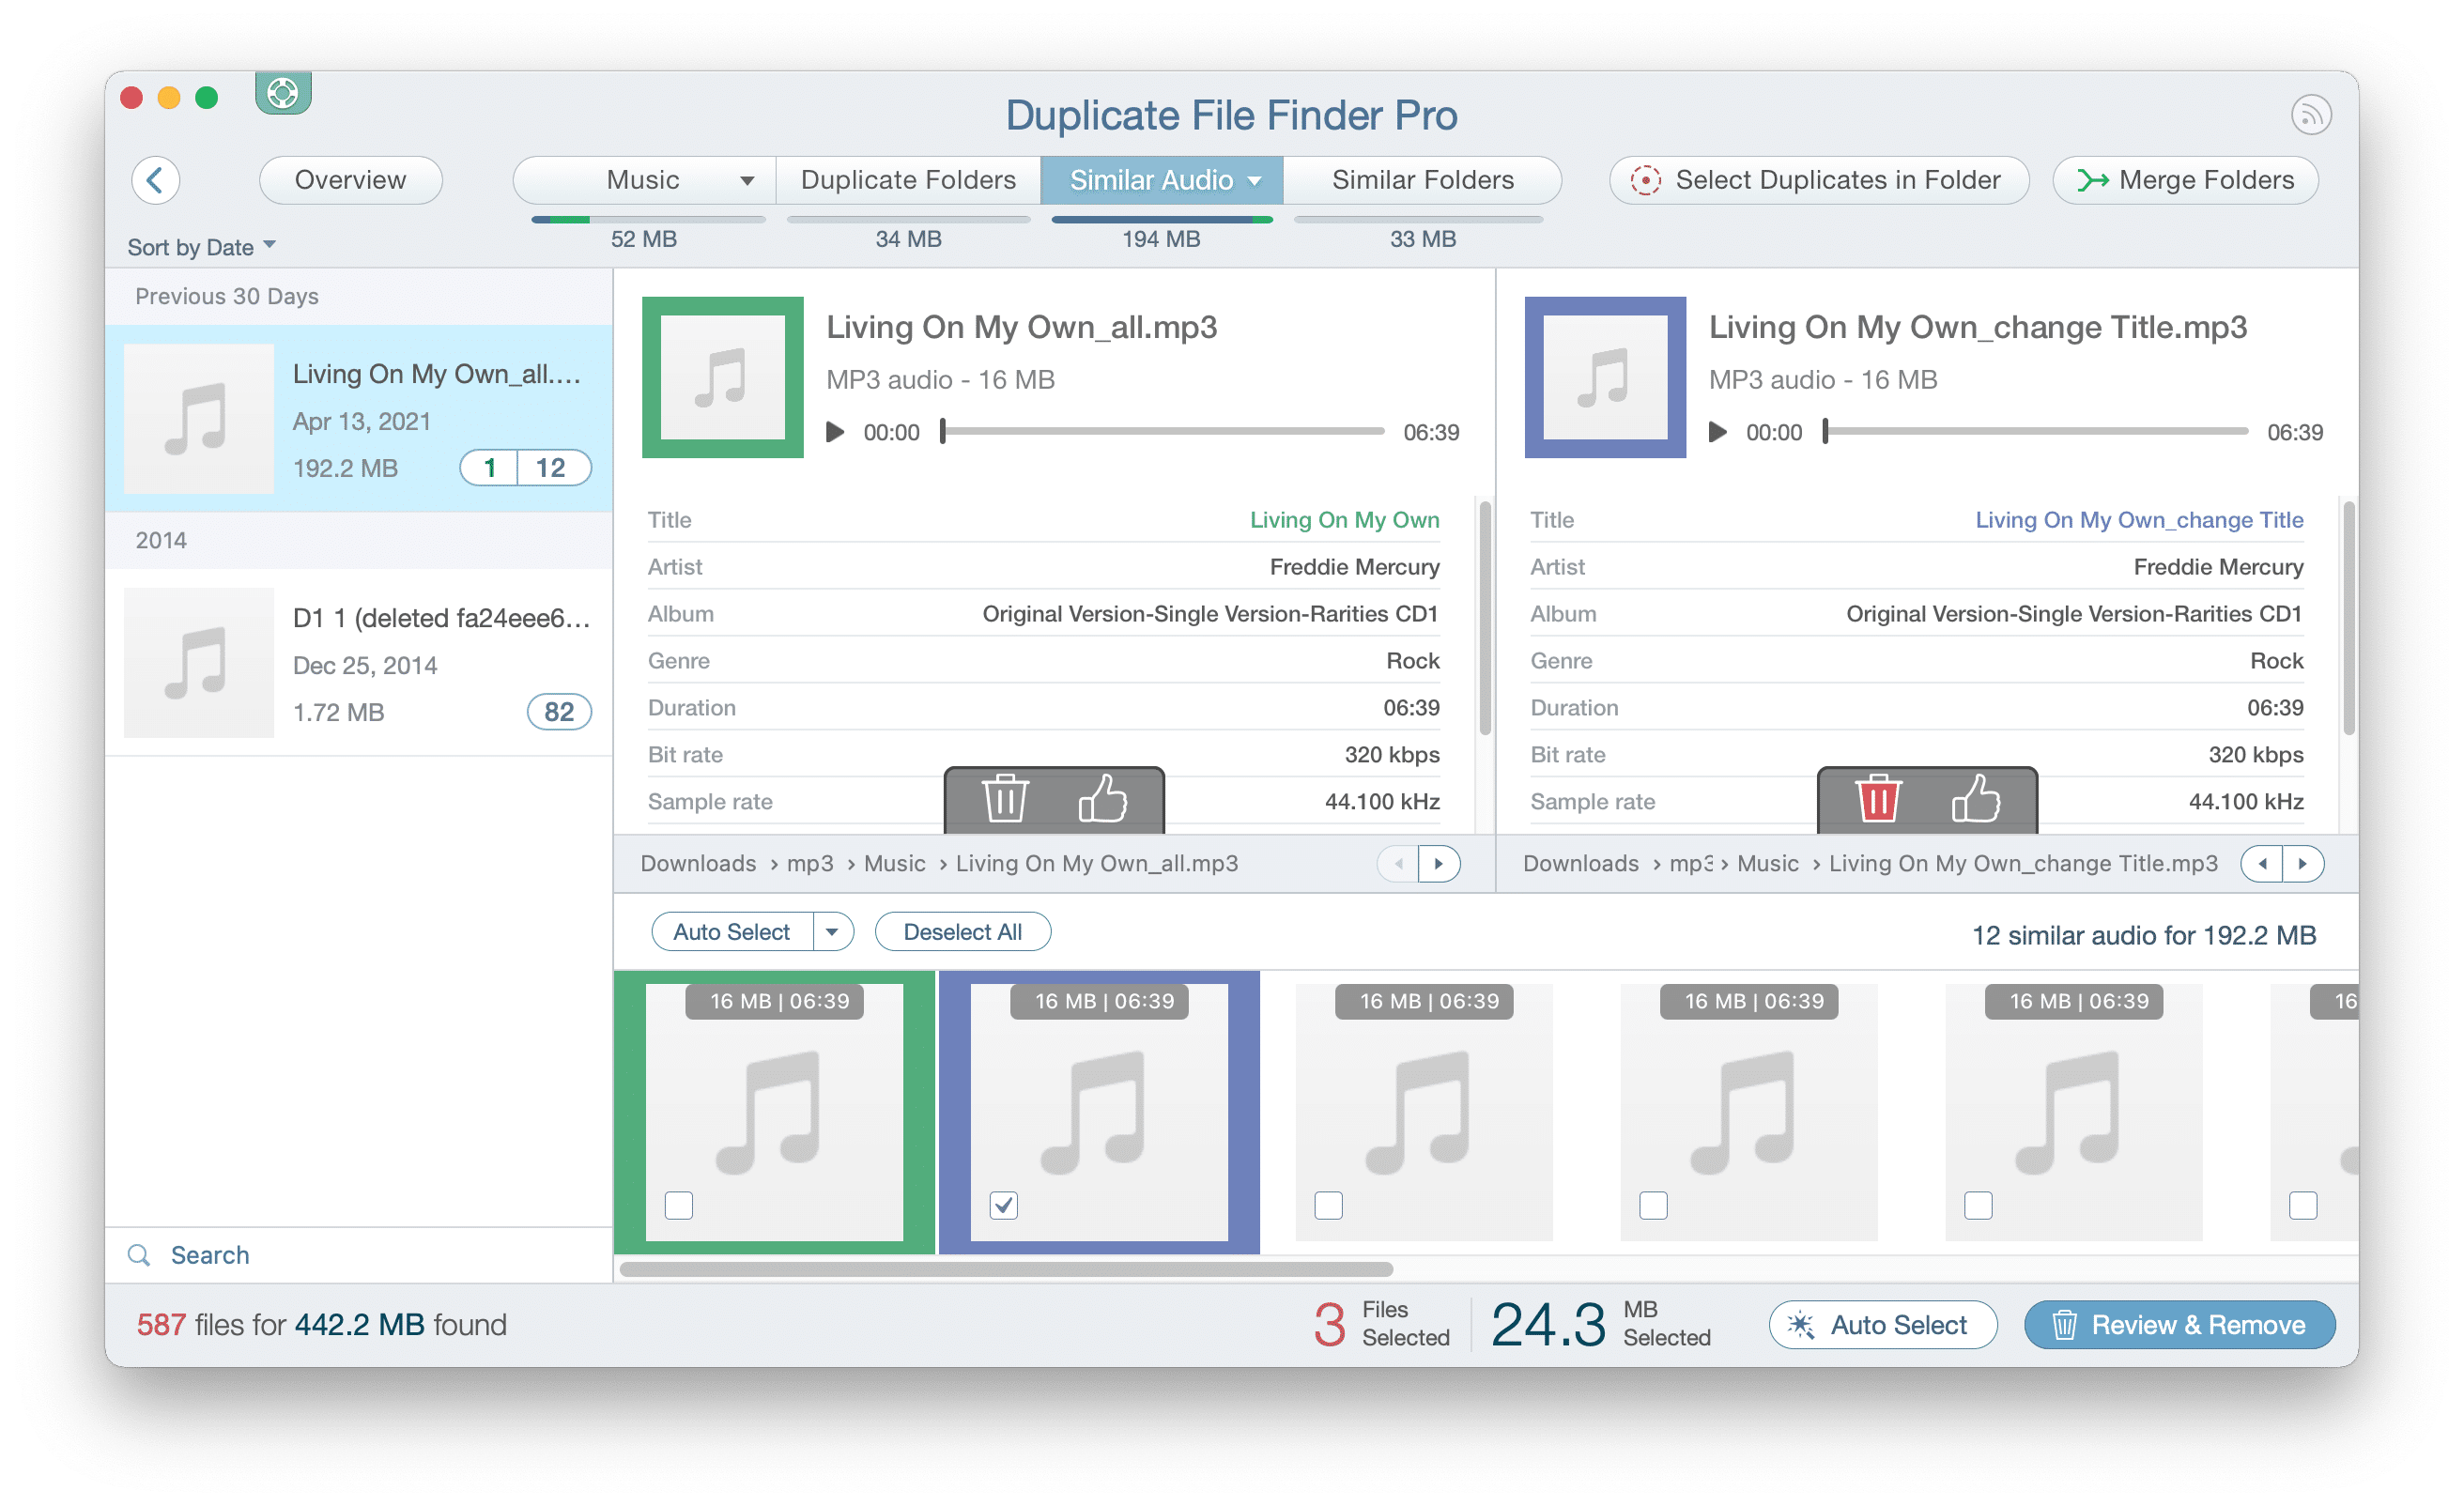 Duplicate File Finder showing the list of similar audio files